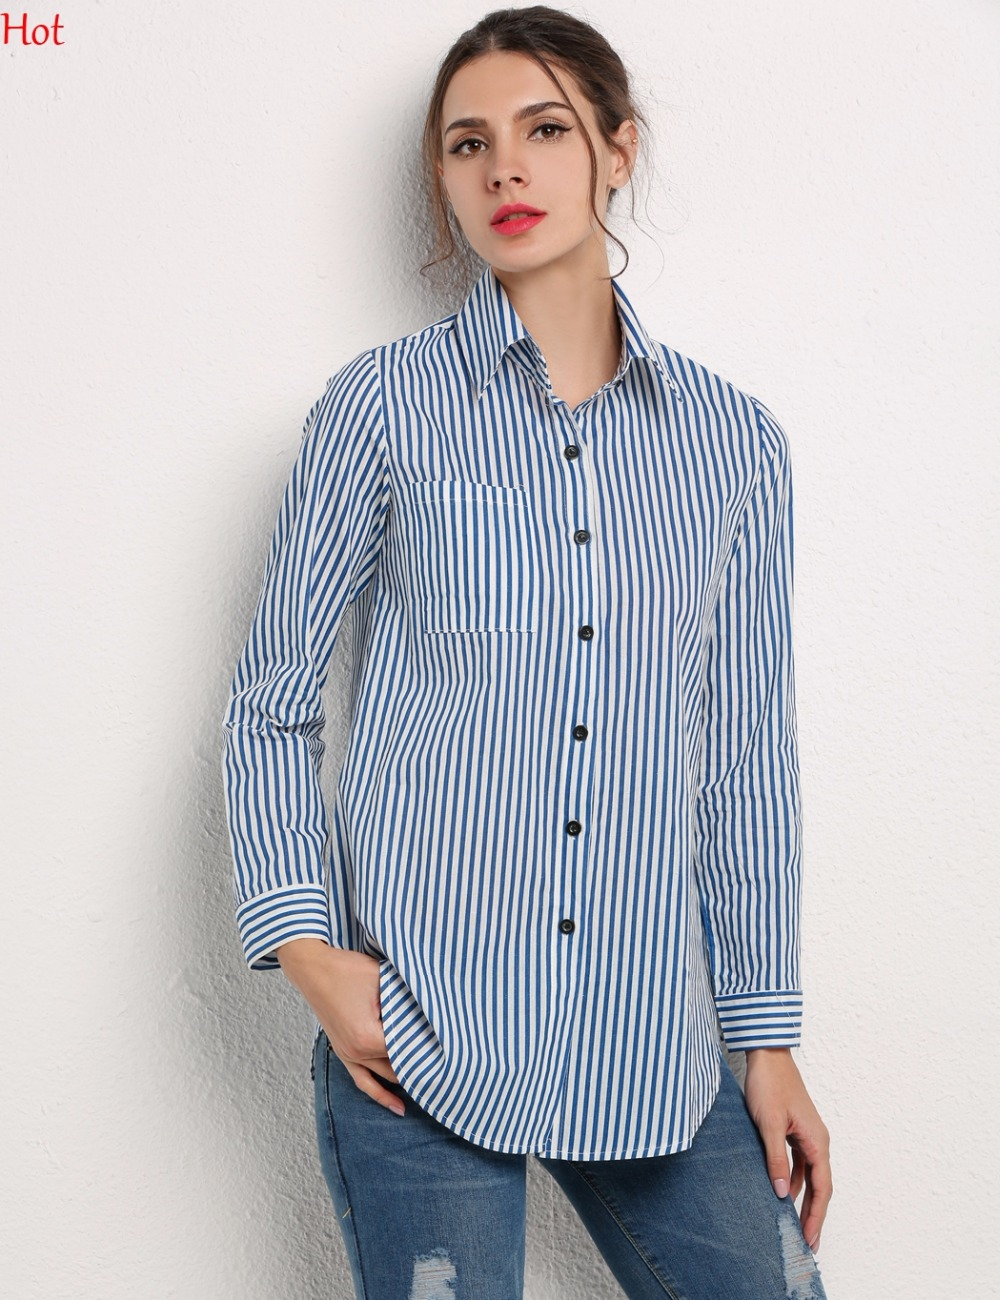 Compare Prices on Womens Work Shirts- Online Shopping/Buy Low ...